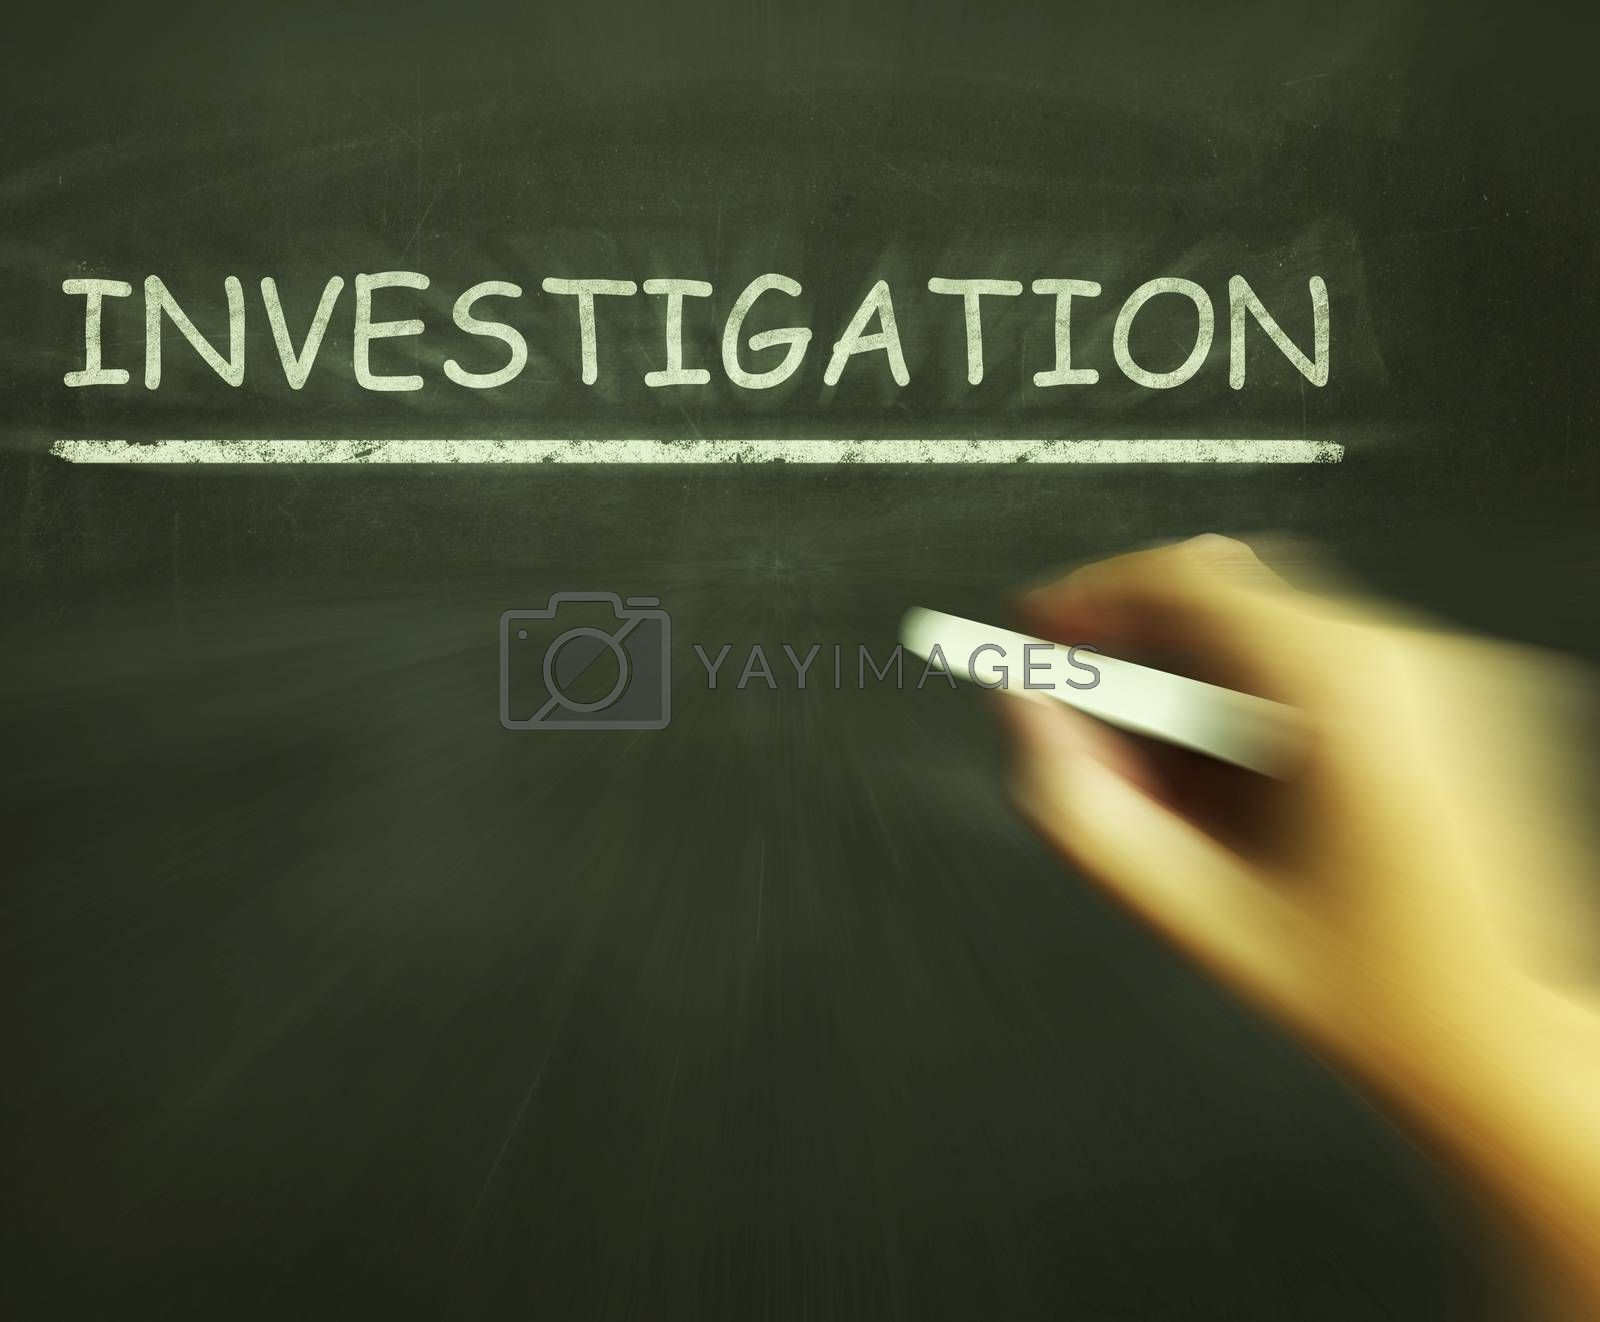 Investigation Chalk Means Inspect Analyse And Find Out by stuartmiles